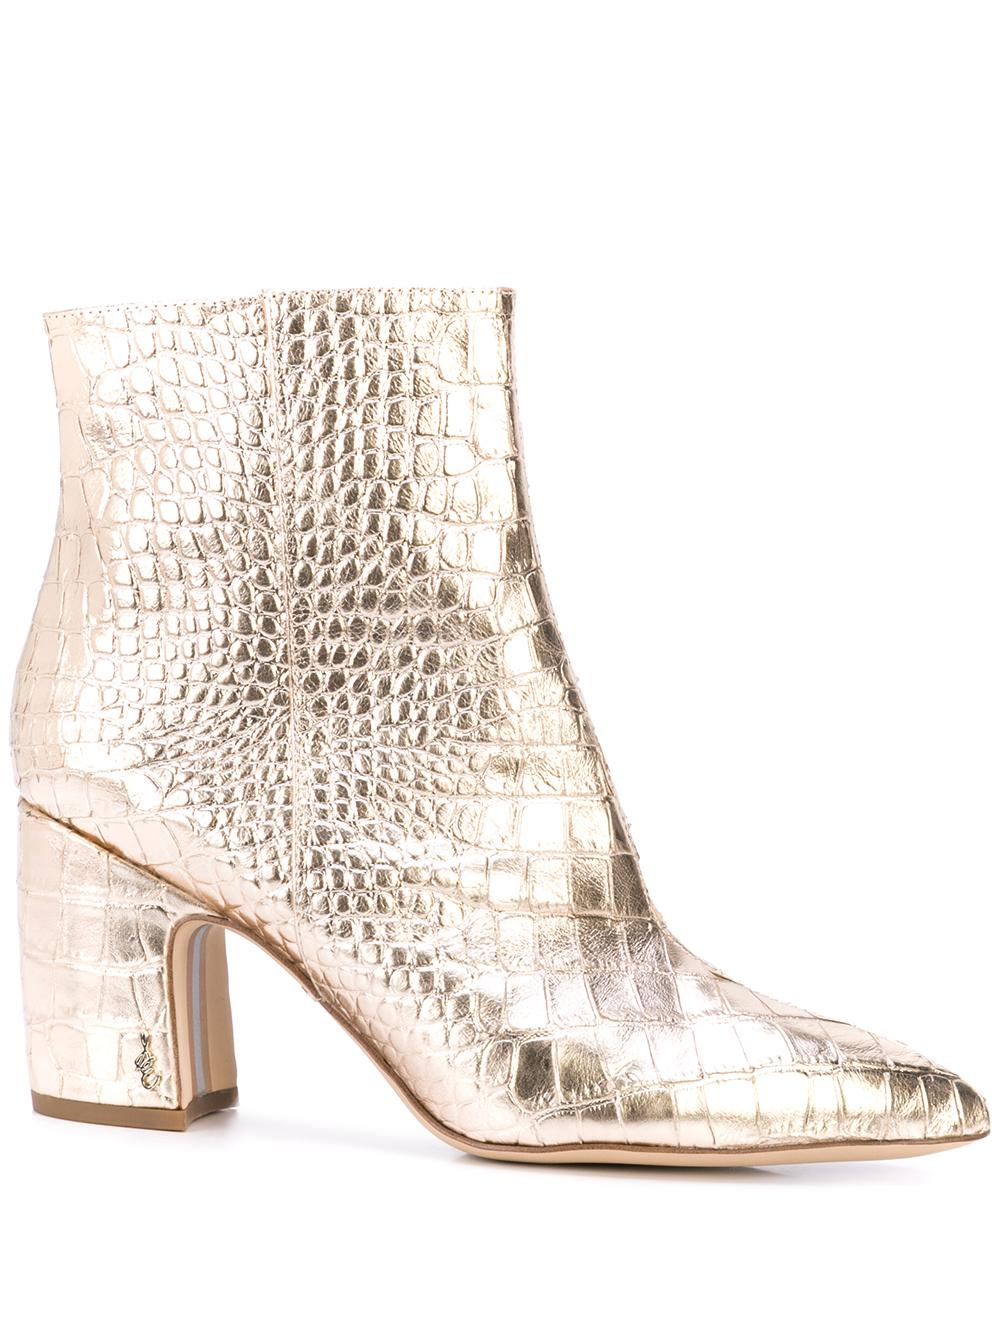 Croc Embossed Pointed Toe Bootie Item # HILTY-CROC